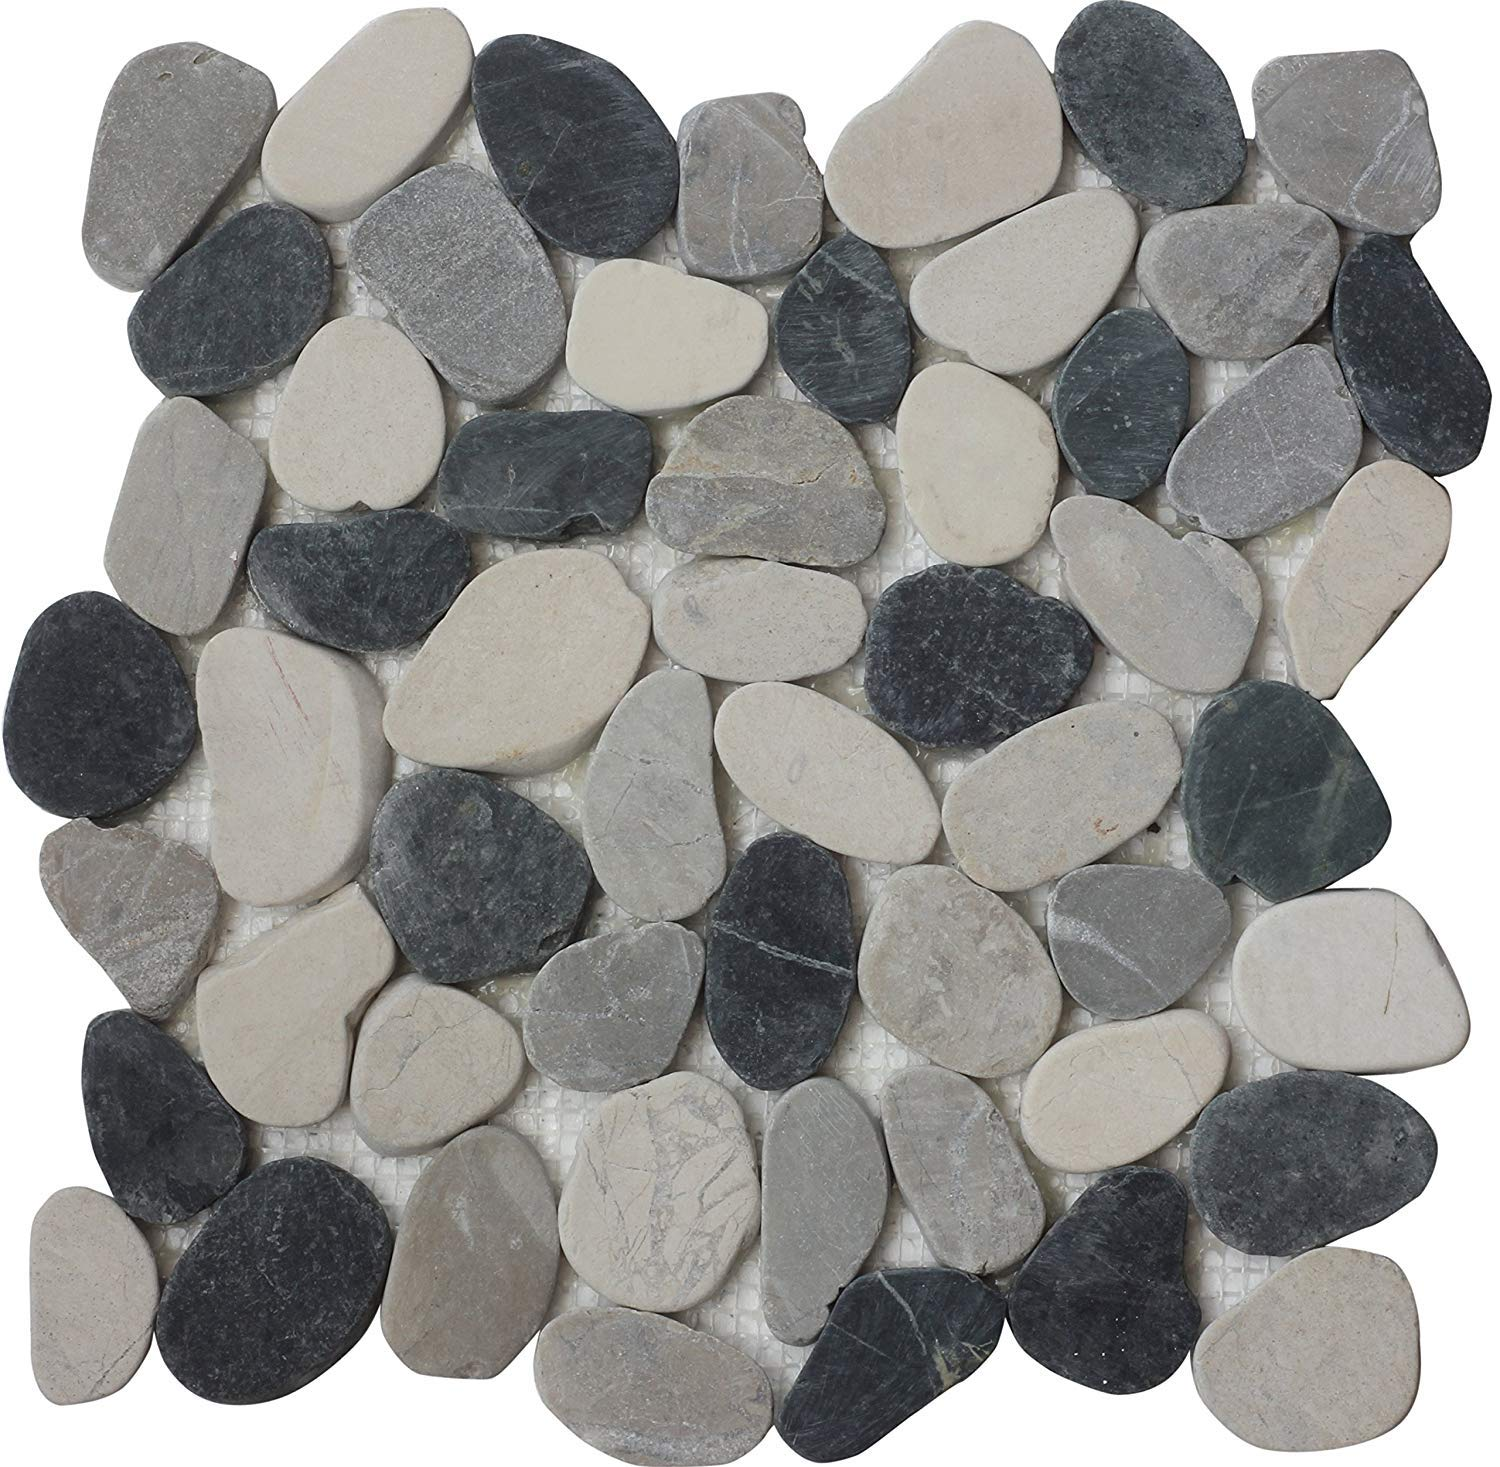 Interlocking Pebble Floor Tiles (10-Sheets) Kitchen, Bathroom, and Patio Flooring   Indoor and Outdoor Use   Natural Auburn White Grey Black Stones   Quick and Easy Grout Installation